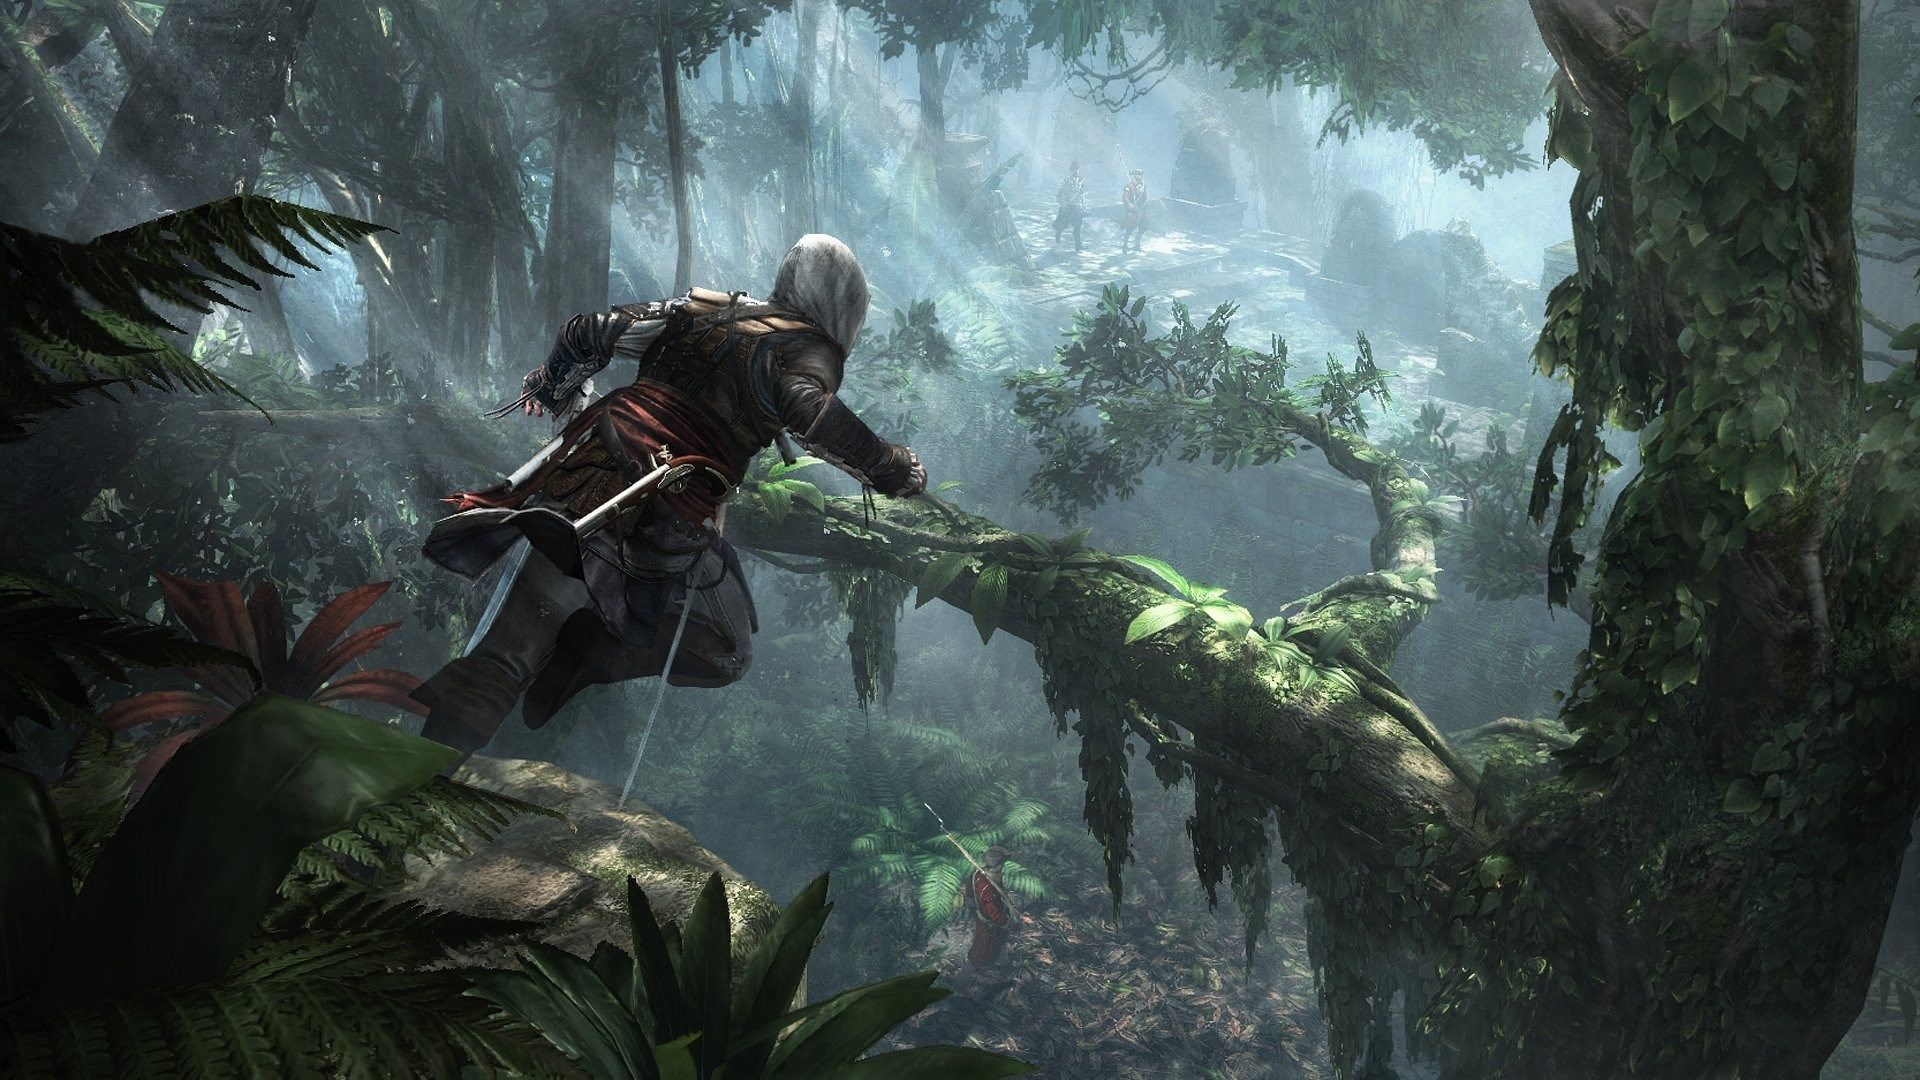 assassins creed iv black flag Wallpaper Collection